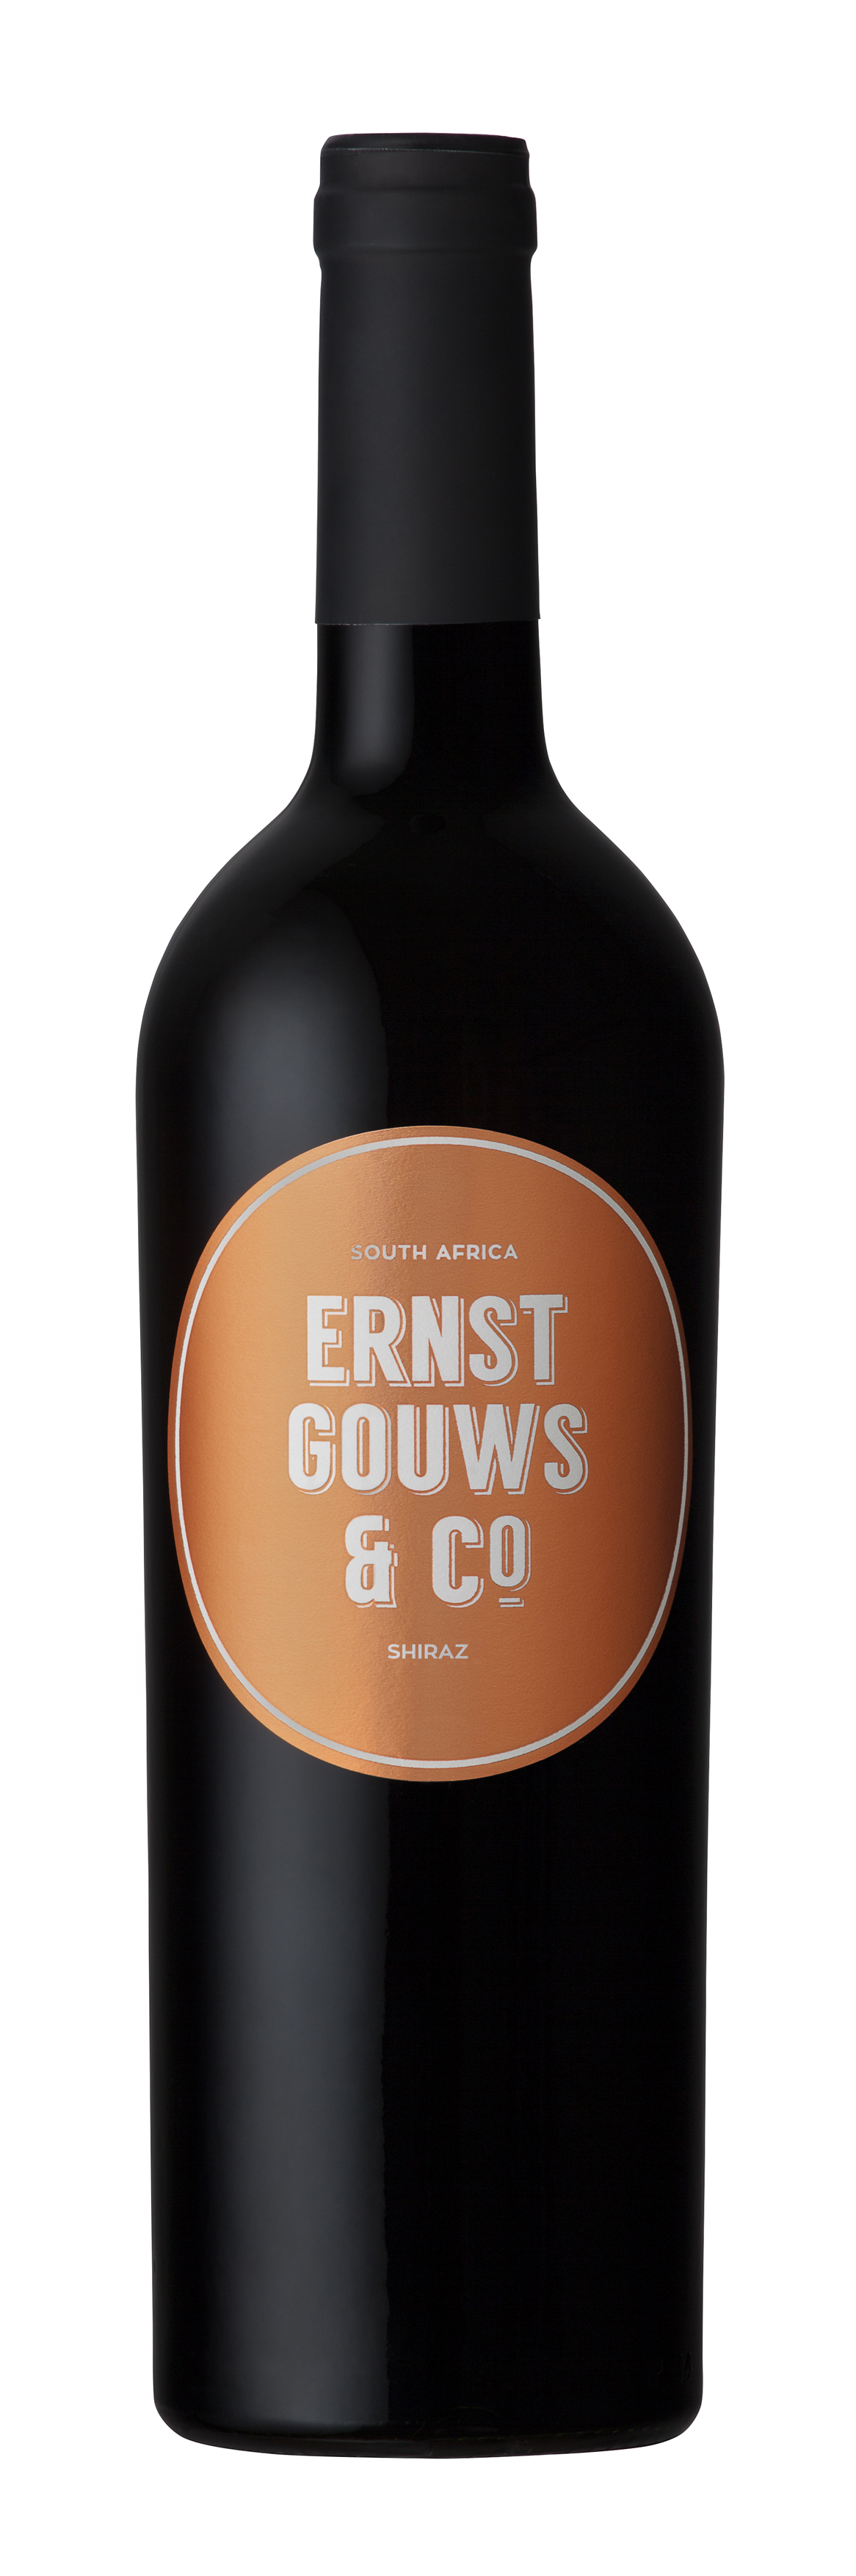 Ernst Gouws & Co Shiraz.jpg